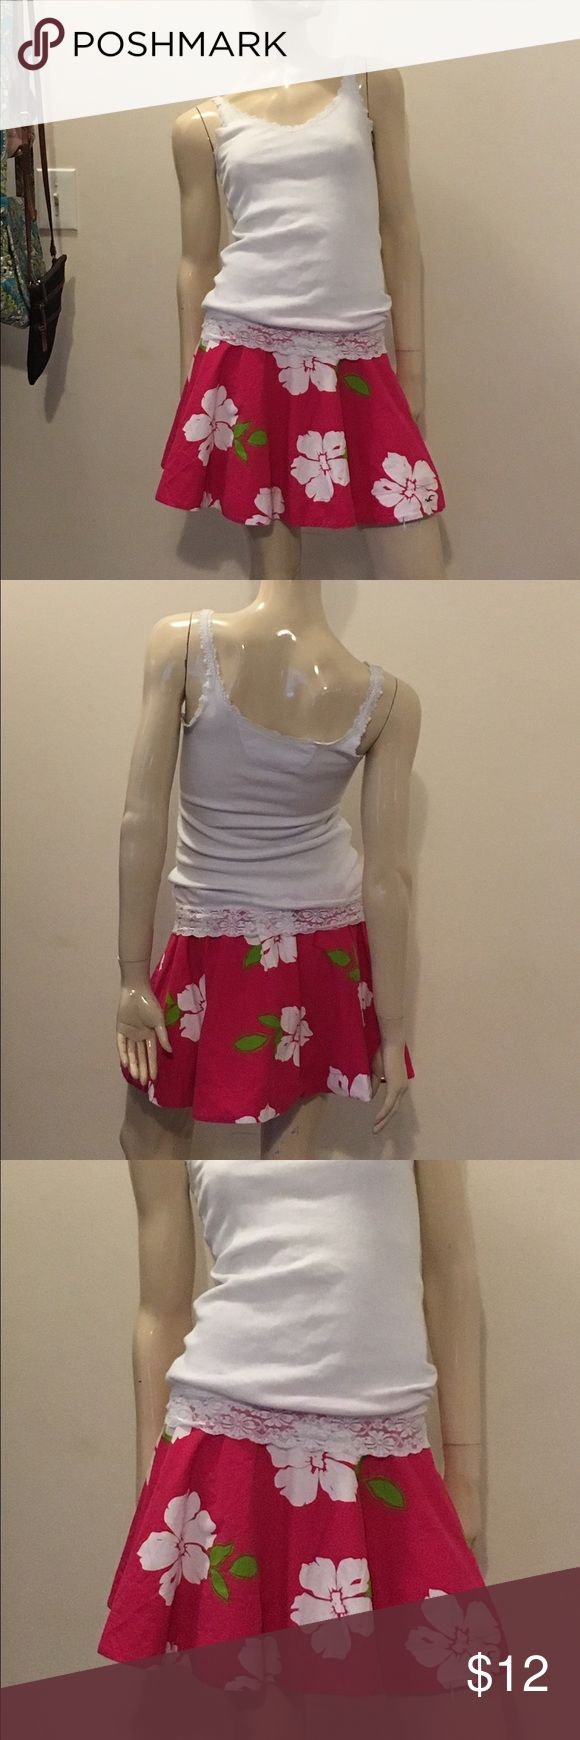 Cute size large Hollister skirt Cute pink floral print size large Hollister skirt, great condition and gently used. Hollister Skirts Mini